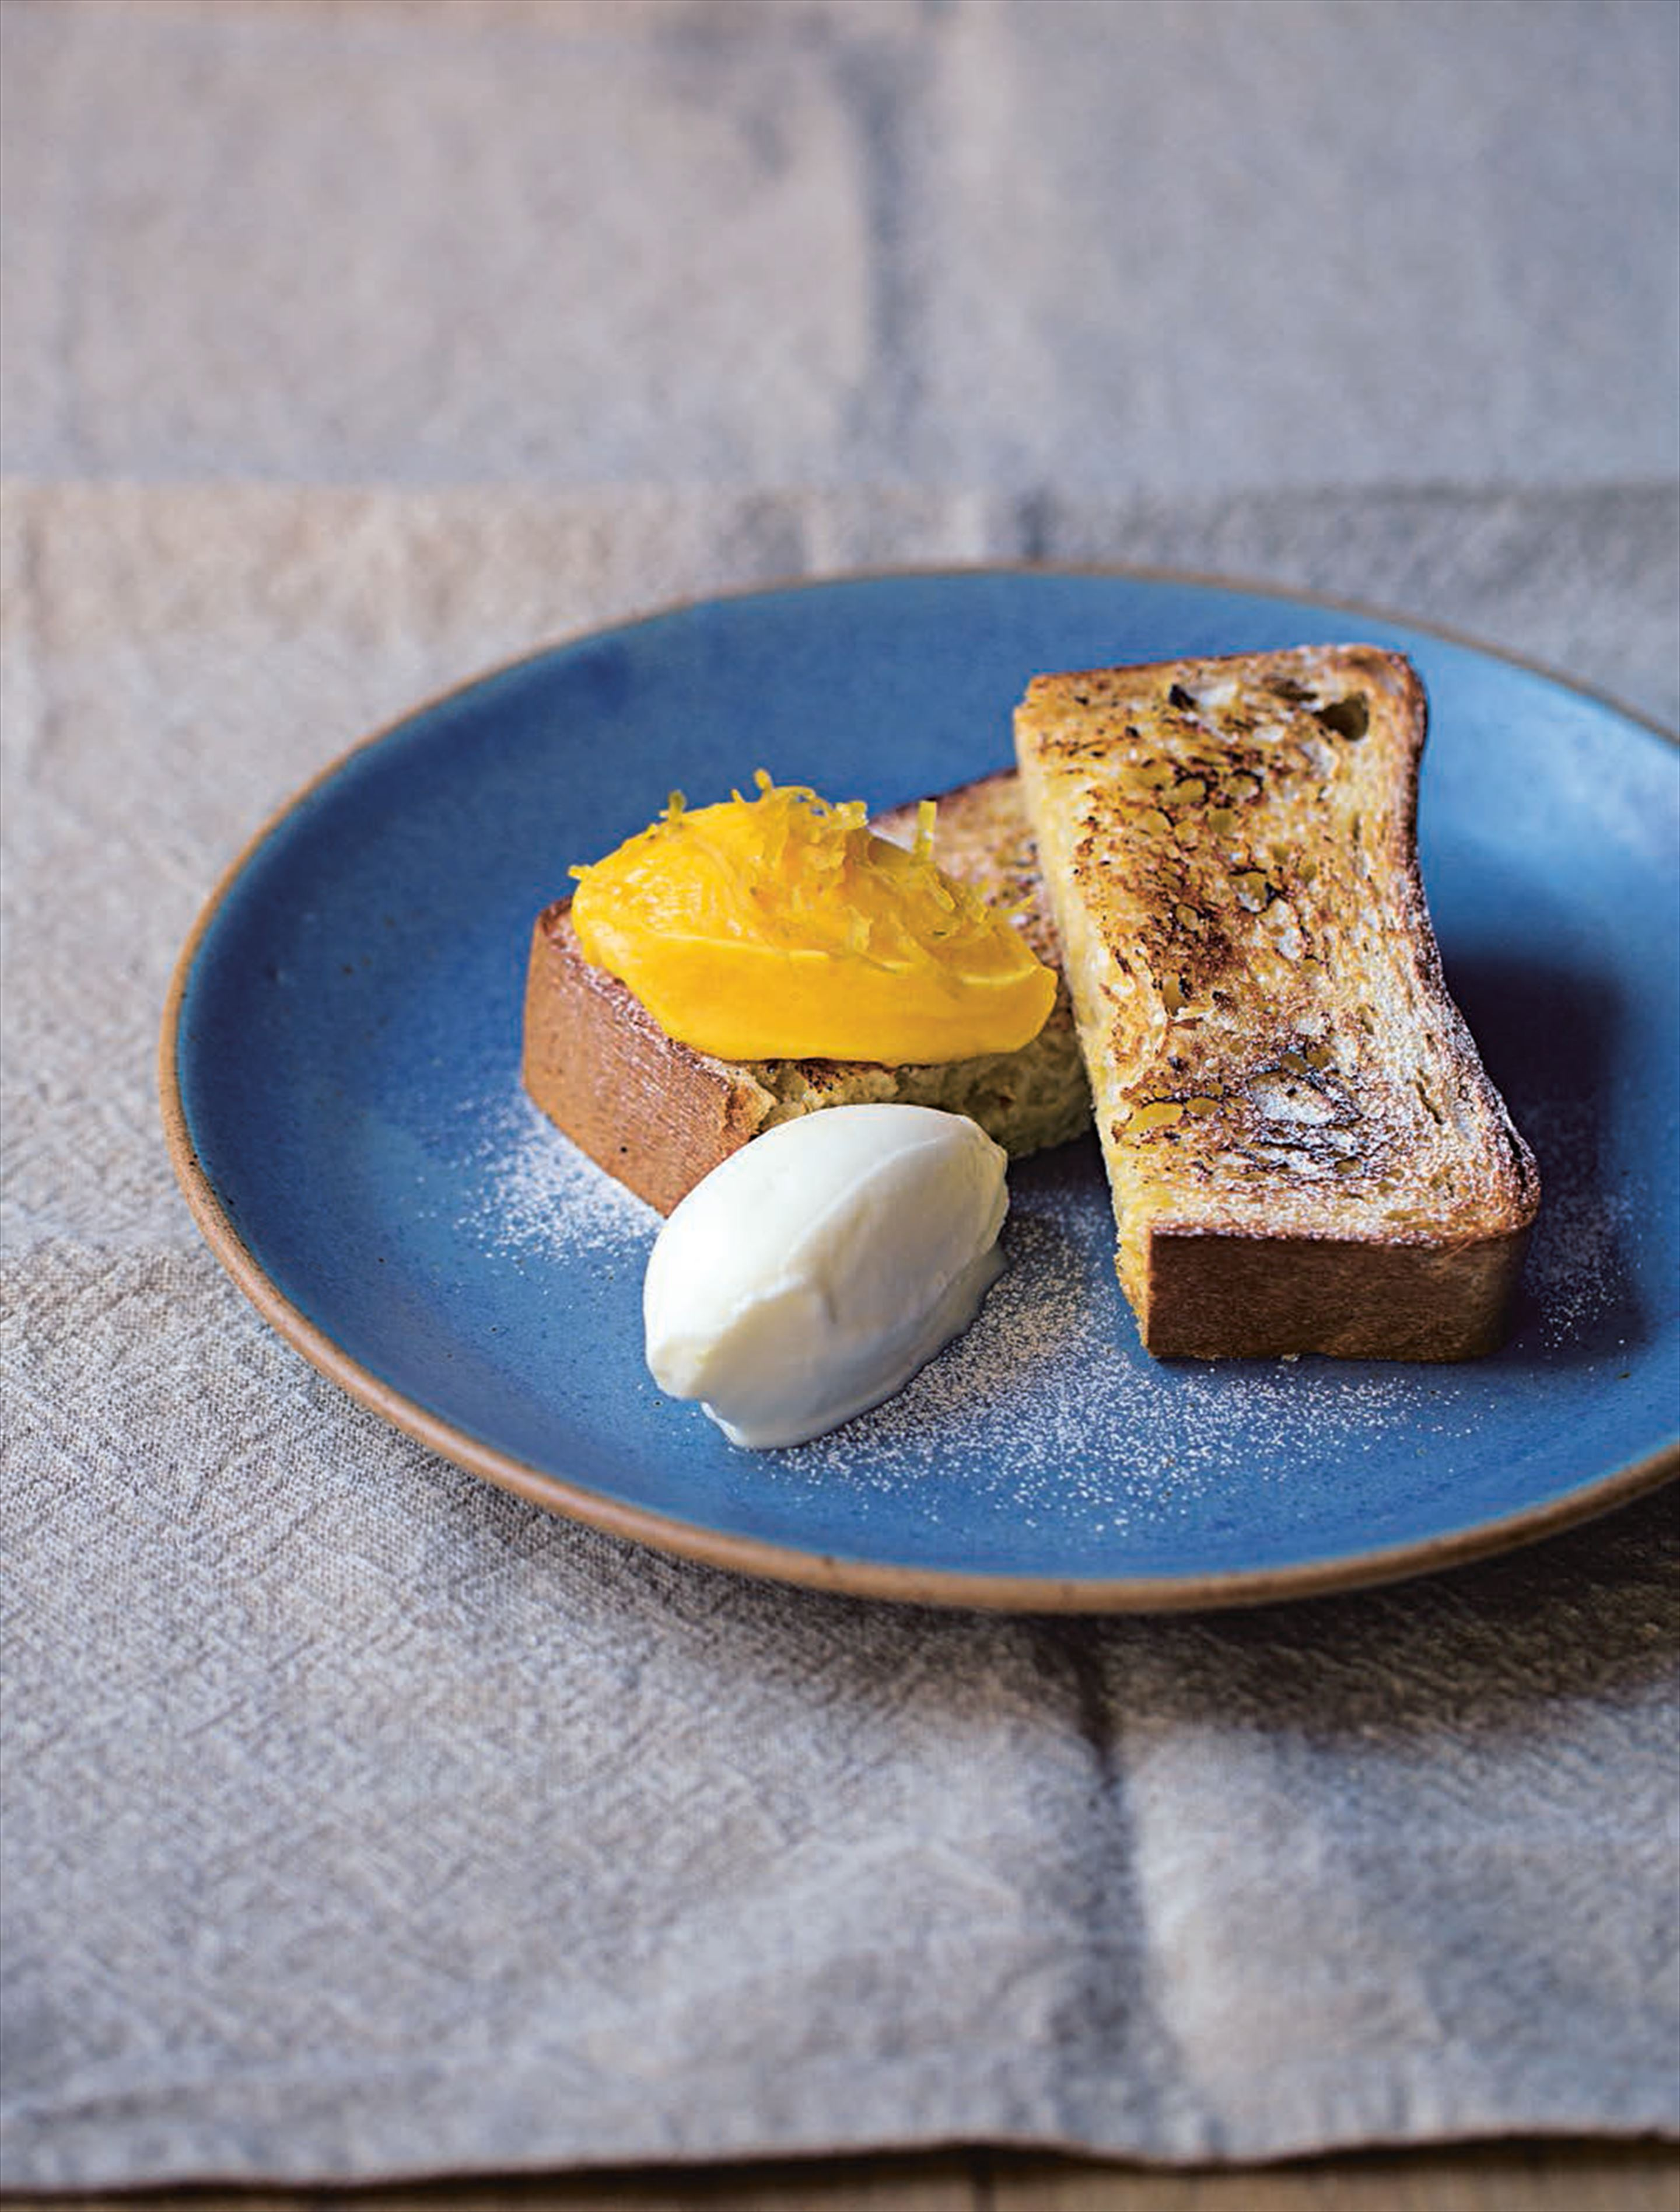 Grilled brioche with lemon curd and yoghurt sorbet